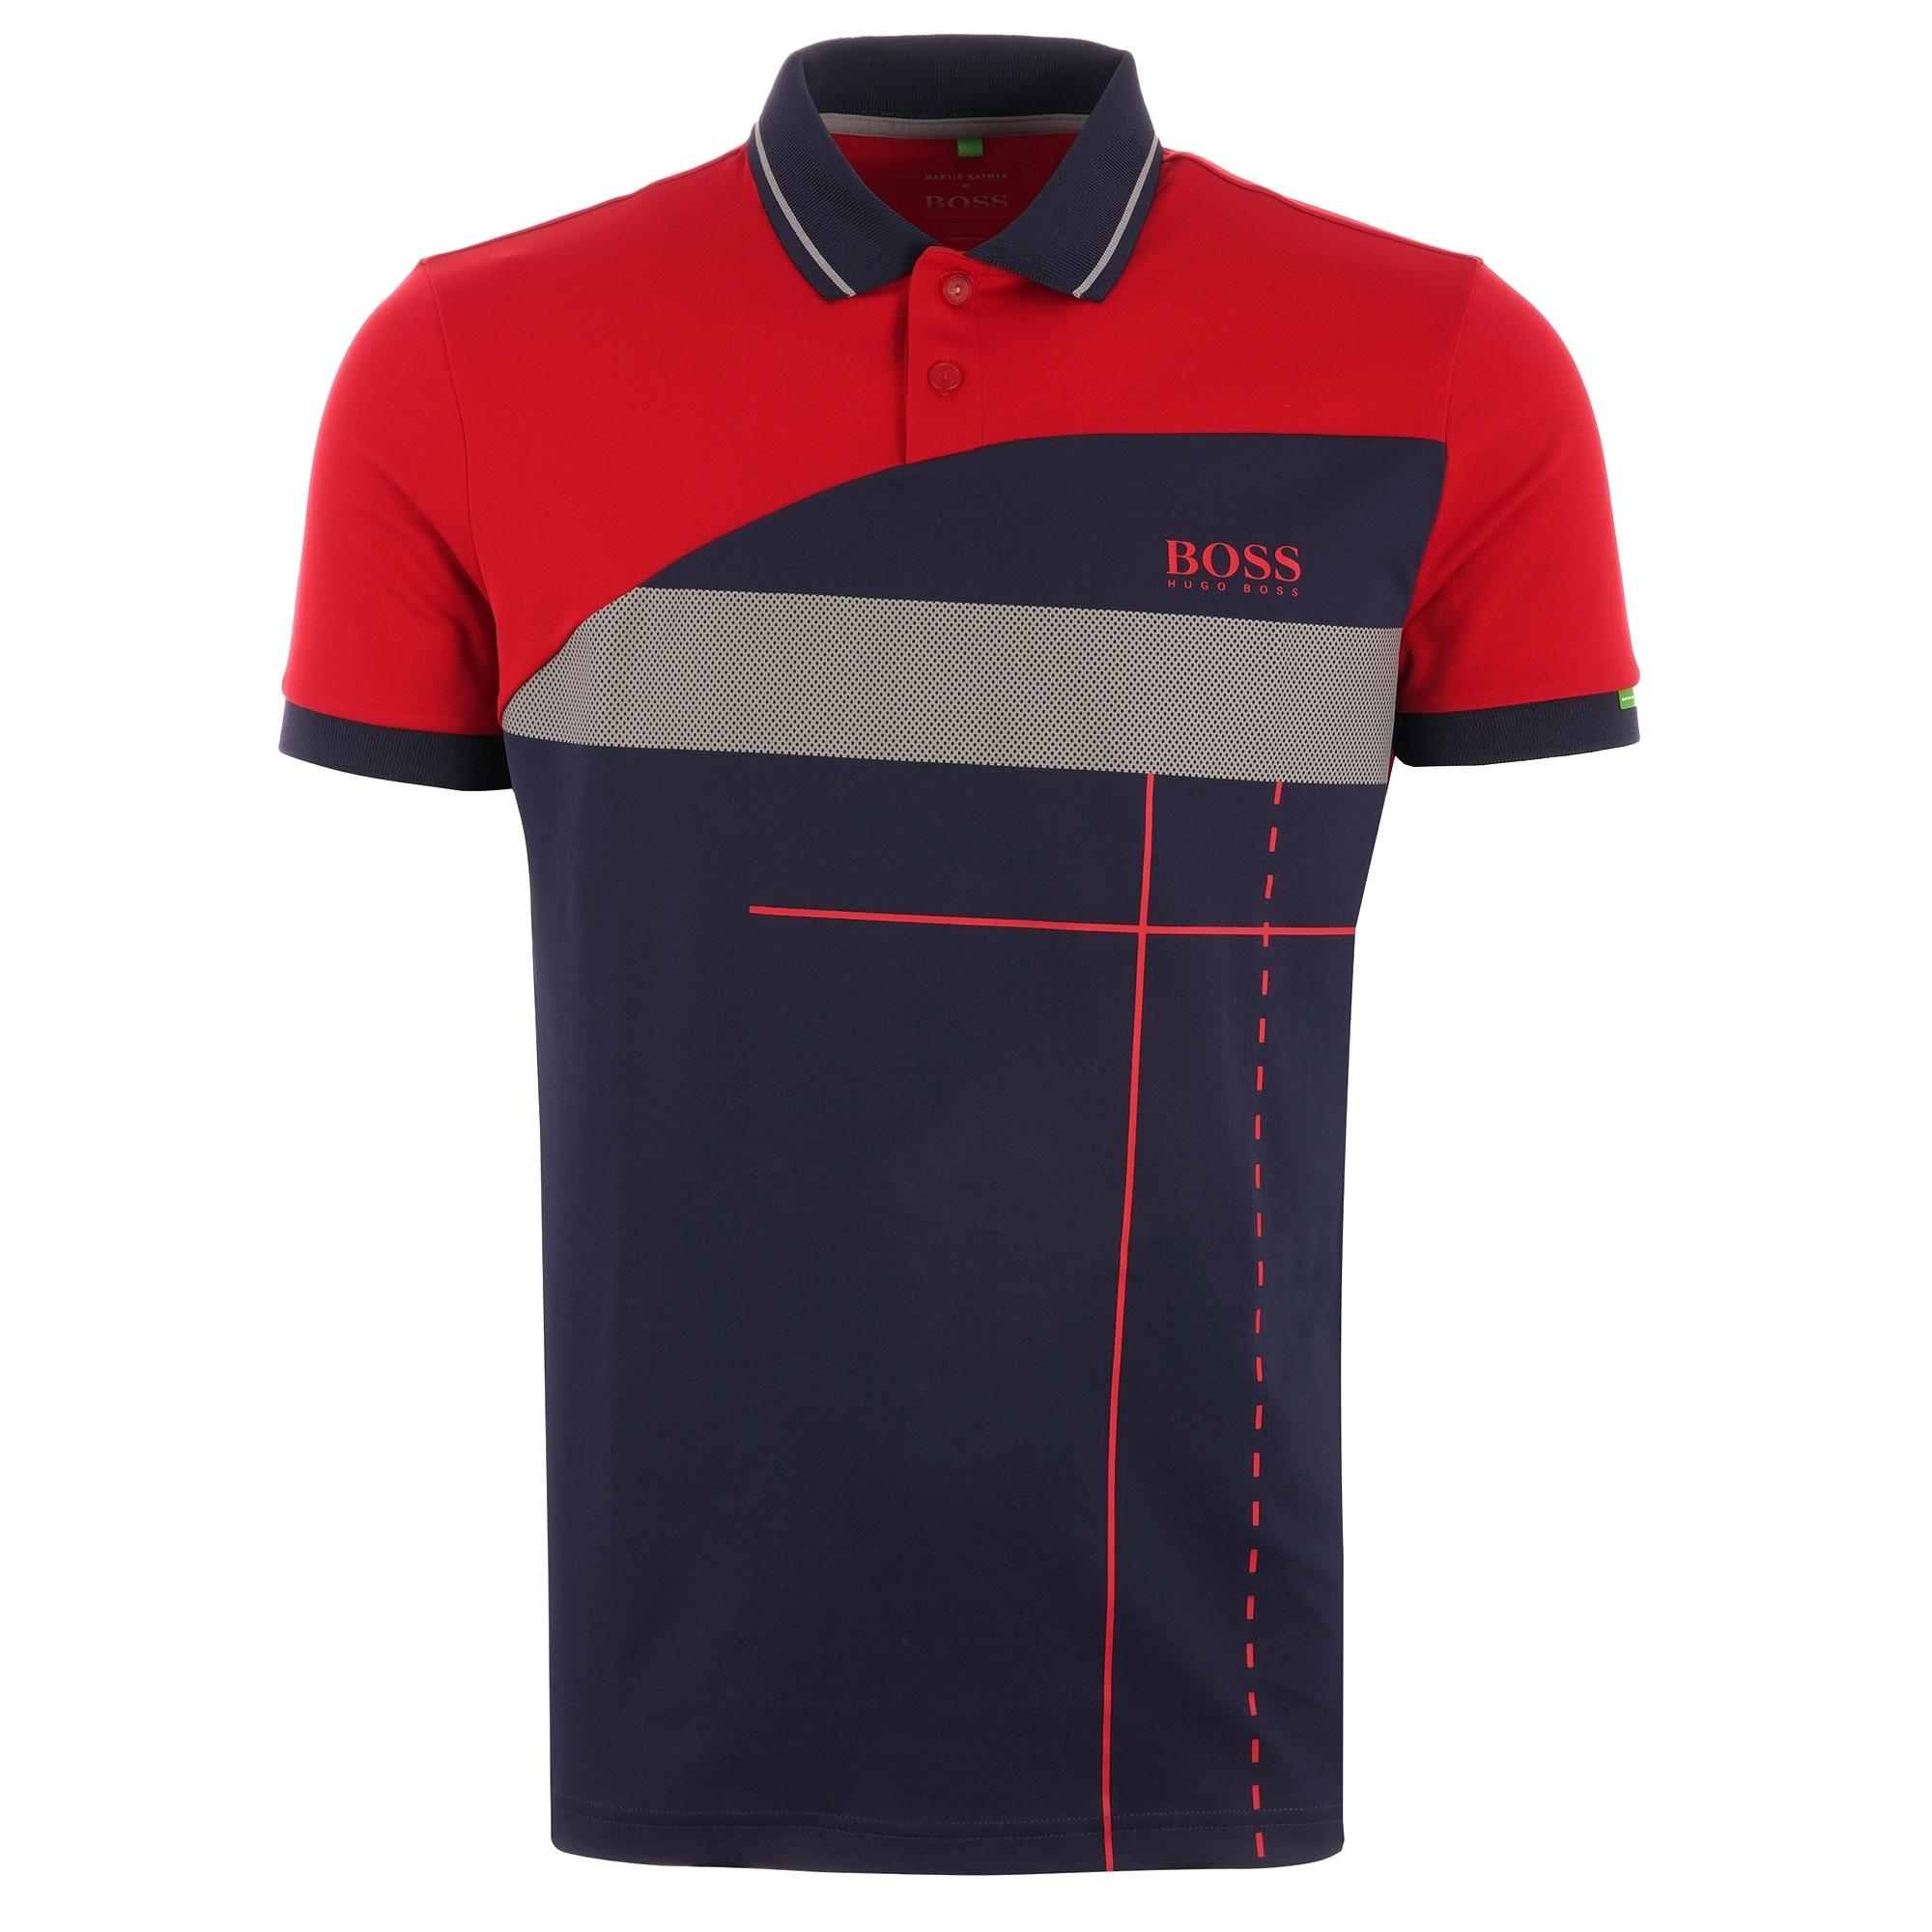 7effca576 BOSS Martin Kaymer Paddy Polo Shirt - Red in Red for Men - Save 40 ...